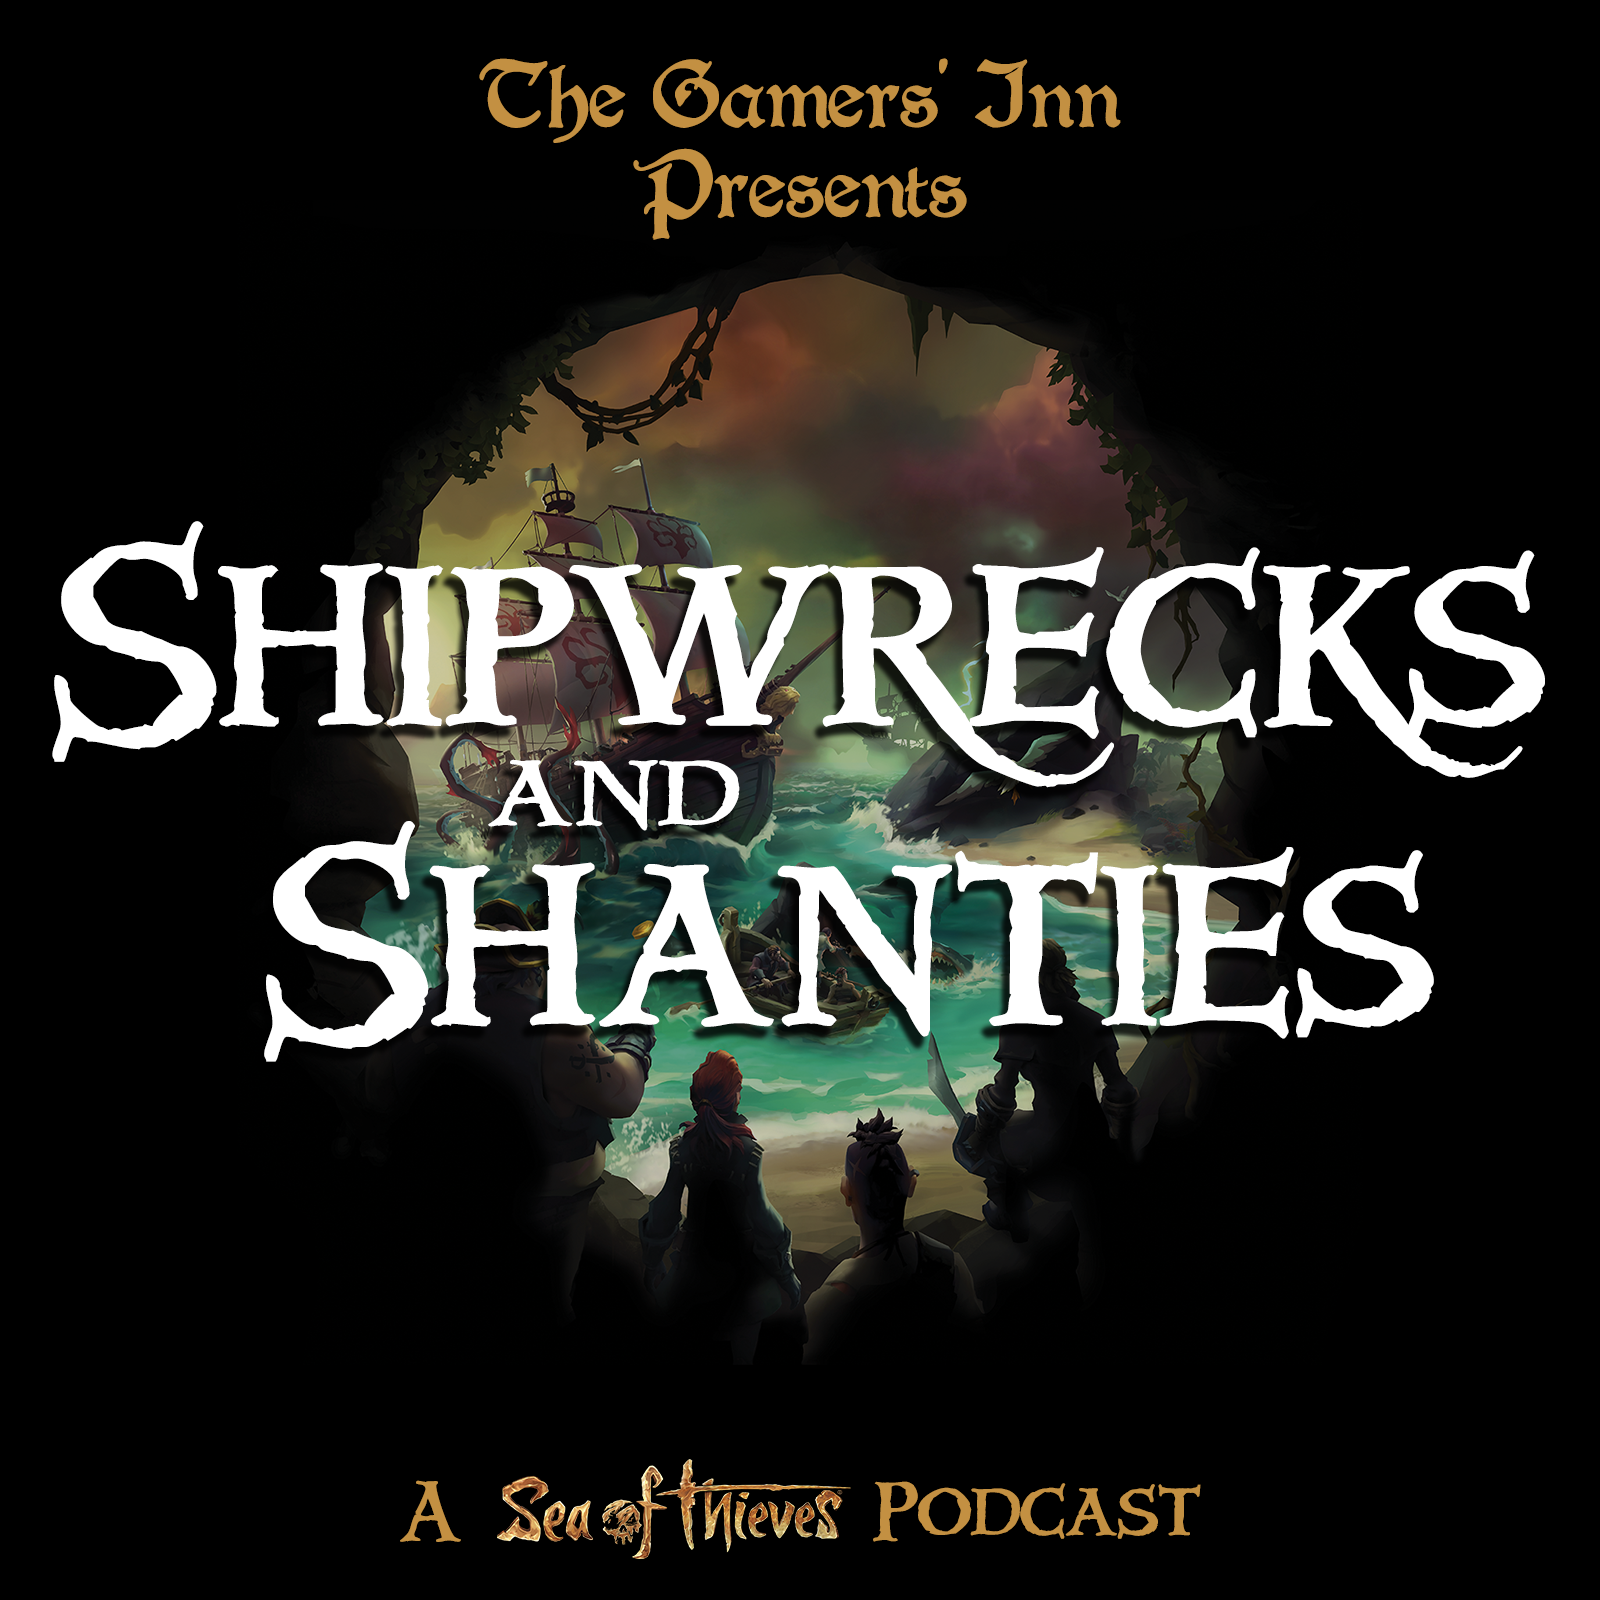 The Gamers' Inn Presents Shipwrecks and Shanties: A Sea of Thieves Podcast